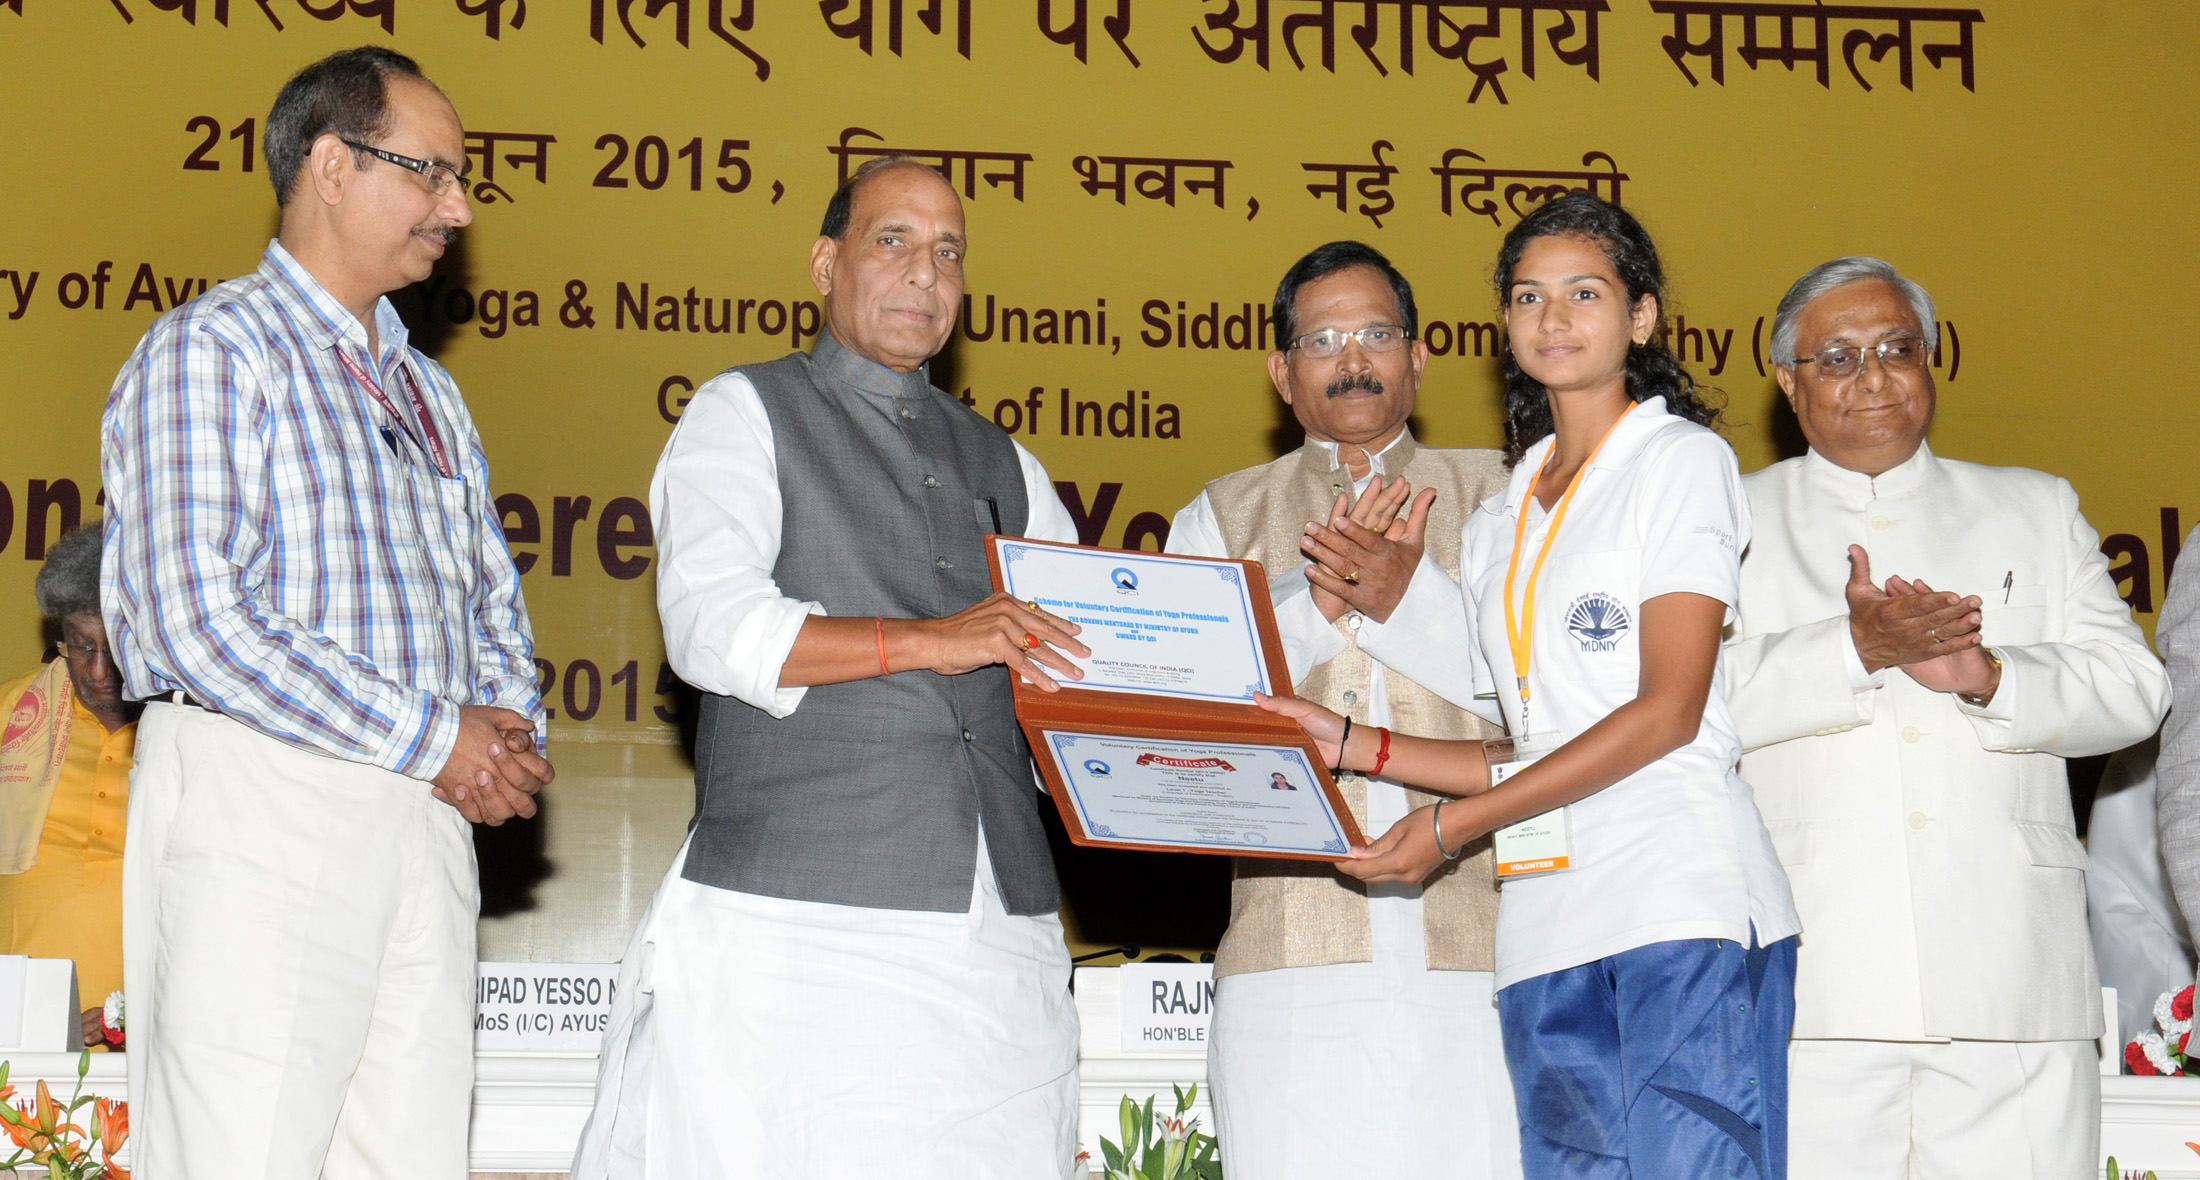 The Union Home Minister, Shri Rajnath Singh presenting the Voluntary Certification of Yoga Professionals, at the International Conference on Yoga for Holistic Health, in New Delhi on June 22, 2015. The Minister of State for AYUSH (Independent Charge) and Health & Family Welfare, Shri Shripad Yesso Naik and the Secretary, Ministry of AYUSH, Shri Nilanjan Sanyal are also seen.